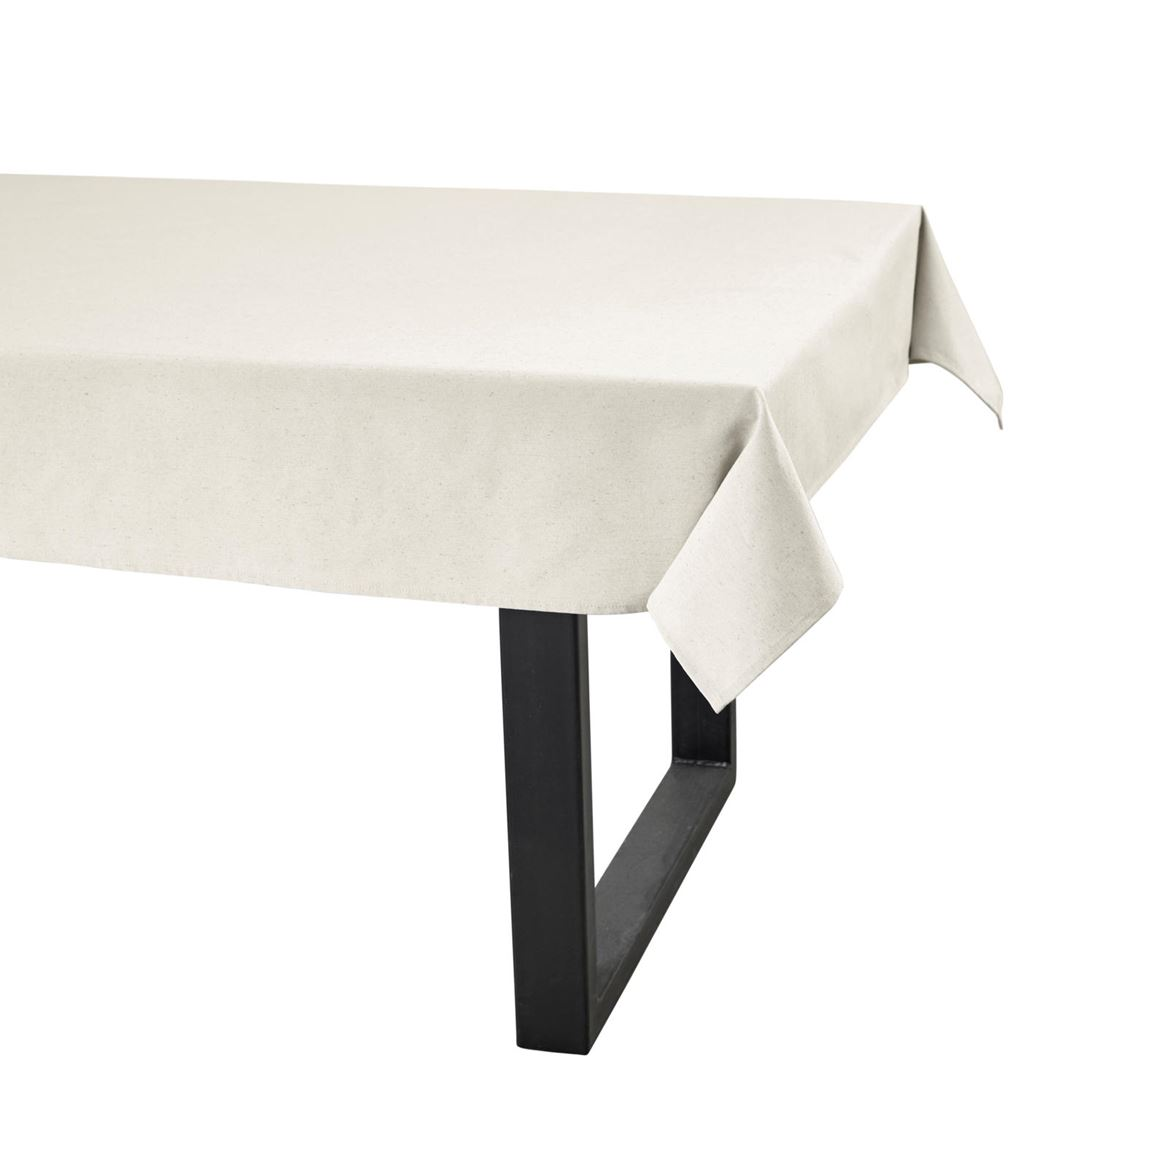 RECYCLE Nappe blanc cassé Larg. 138 x Long. 300 cm_recycle-nappe-blanc-cassé-larg--138-x-long--300-cm